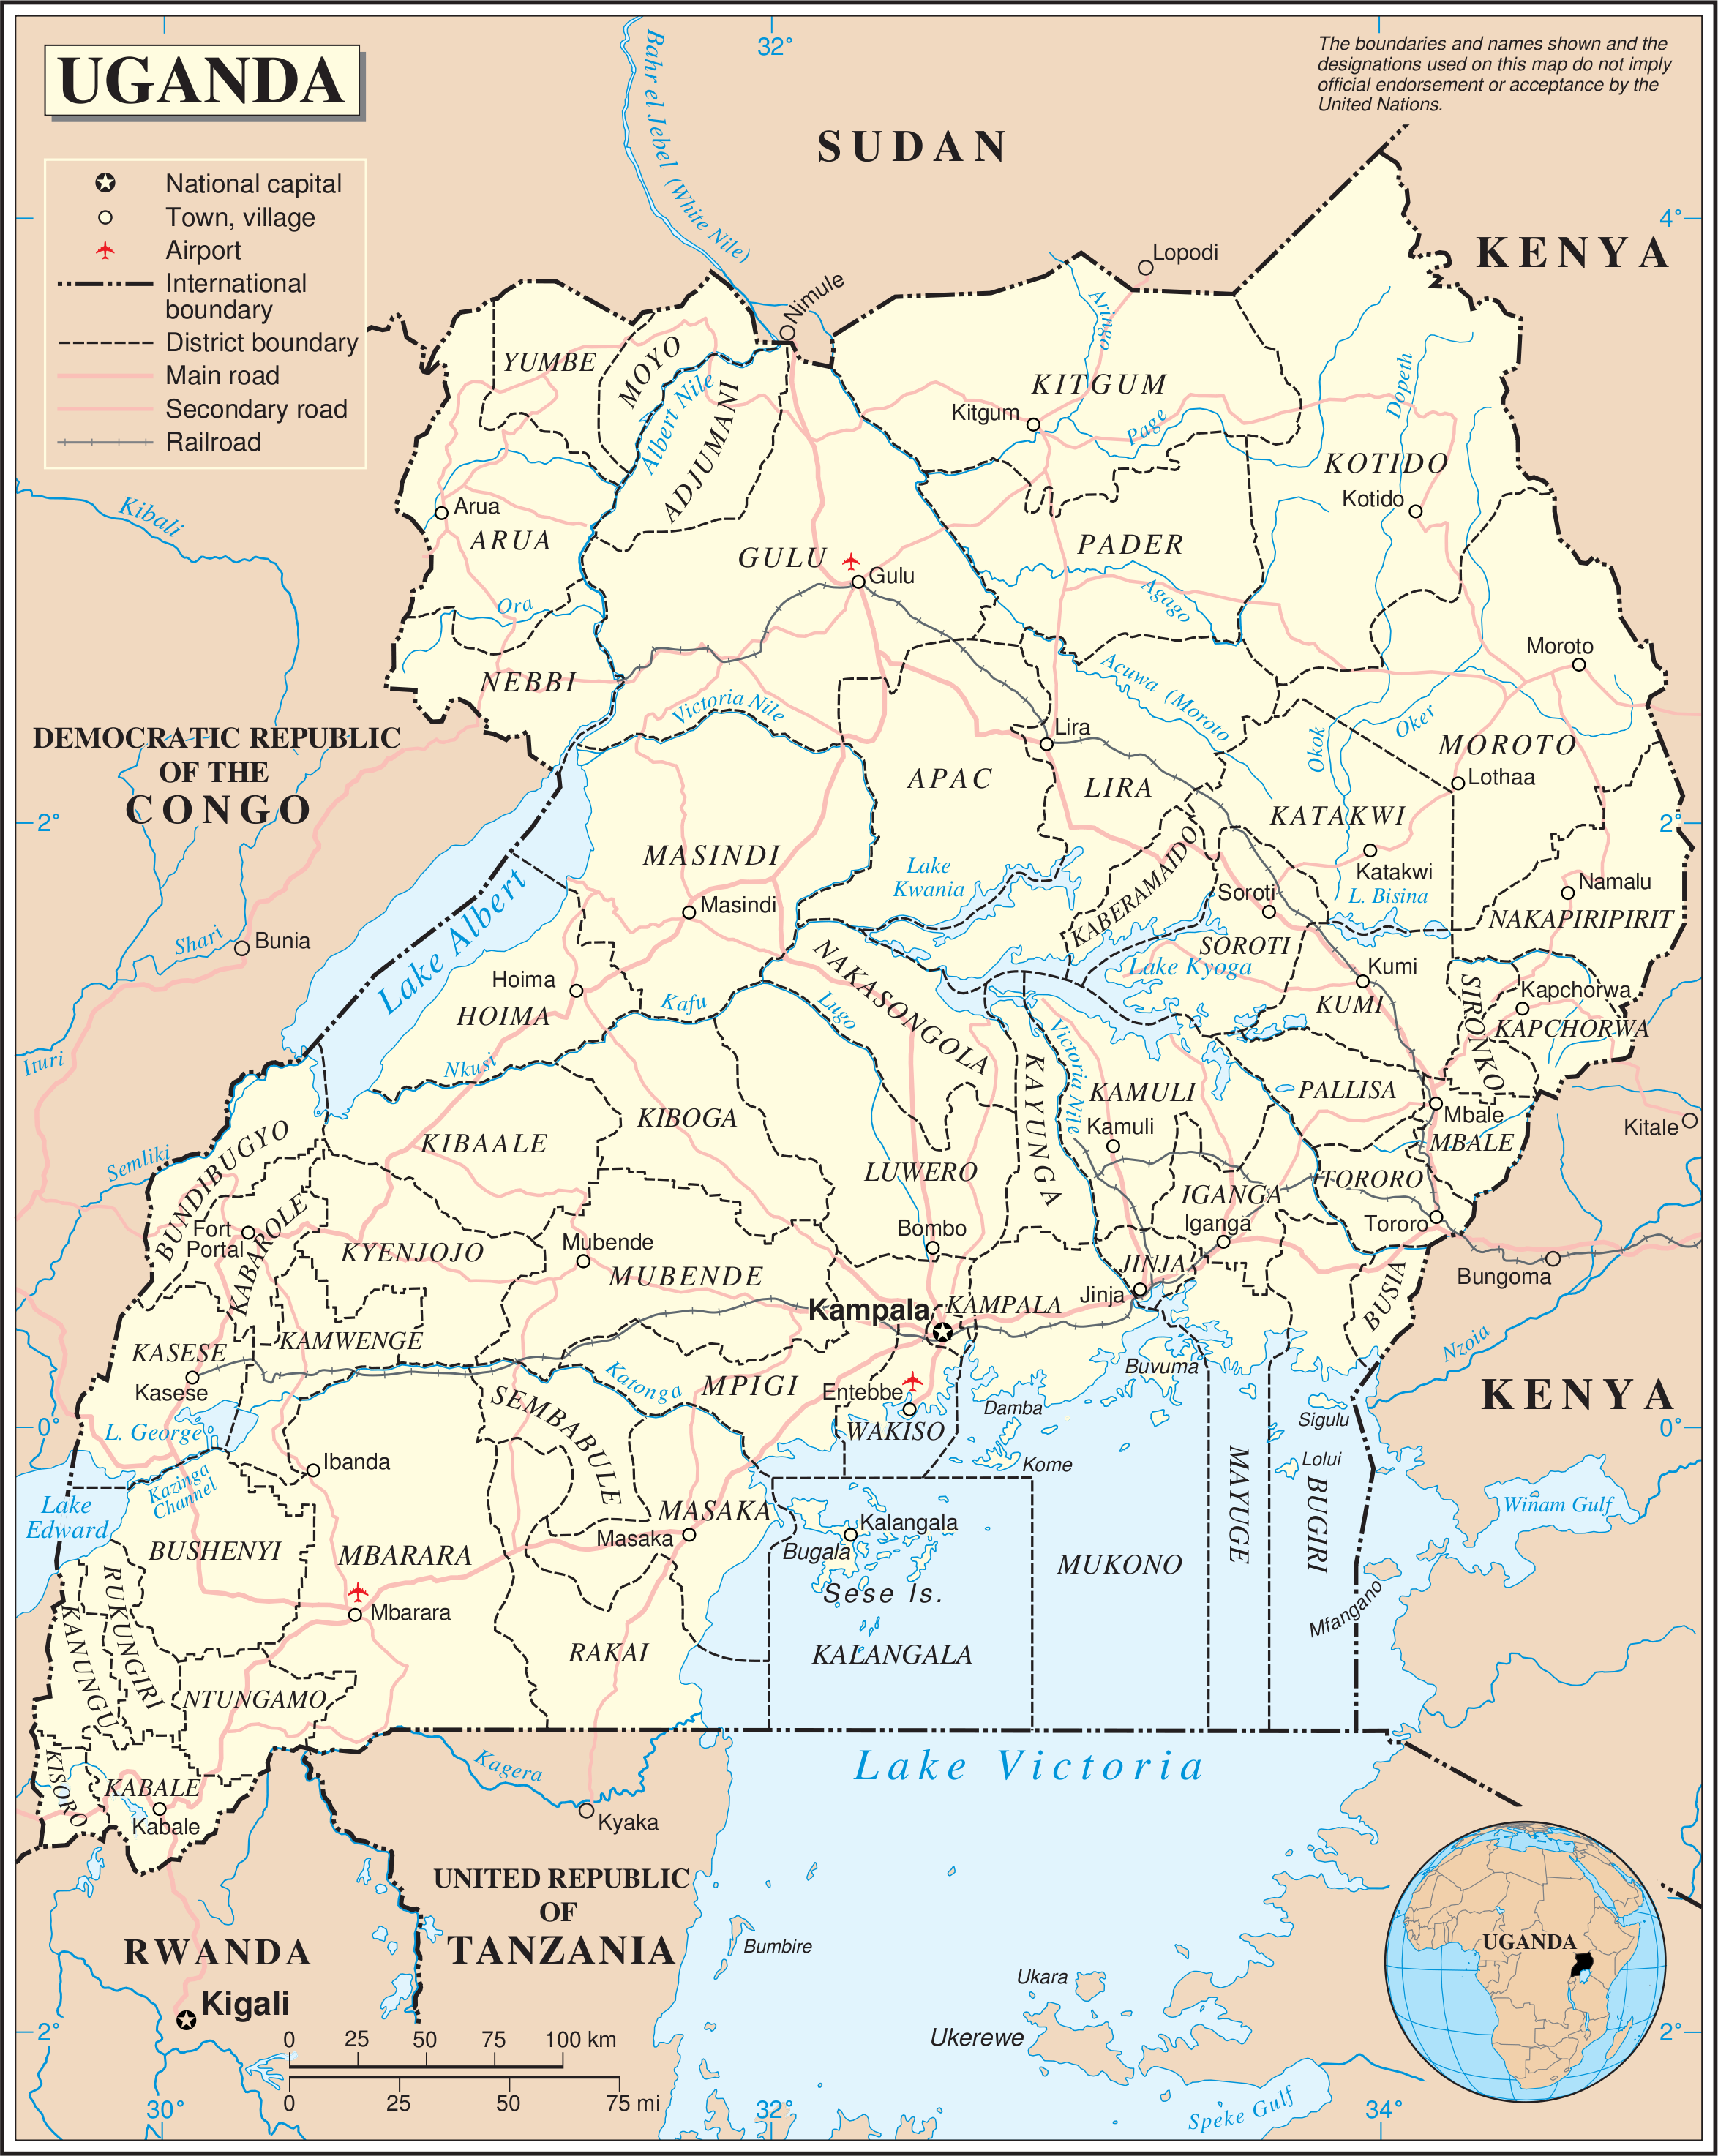 FileUnugandapng Wikimedia Commons - Map of uganda